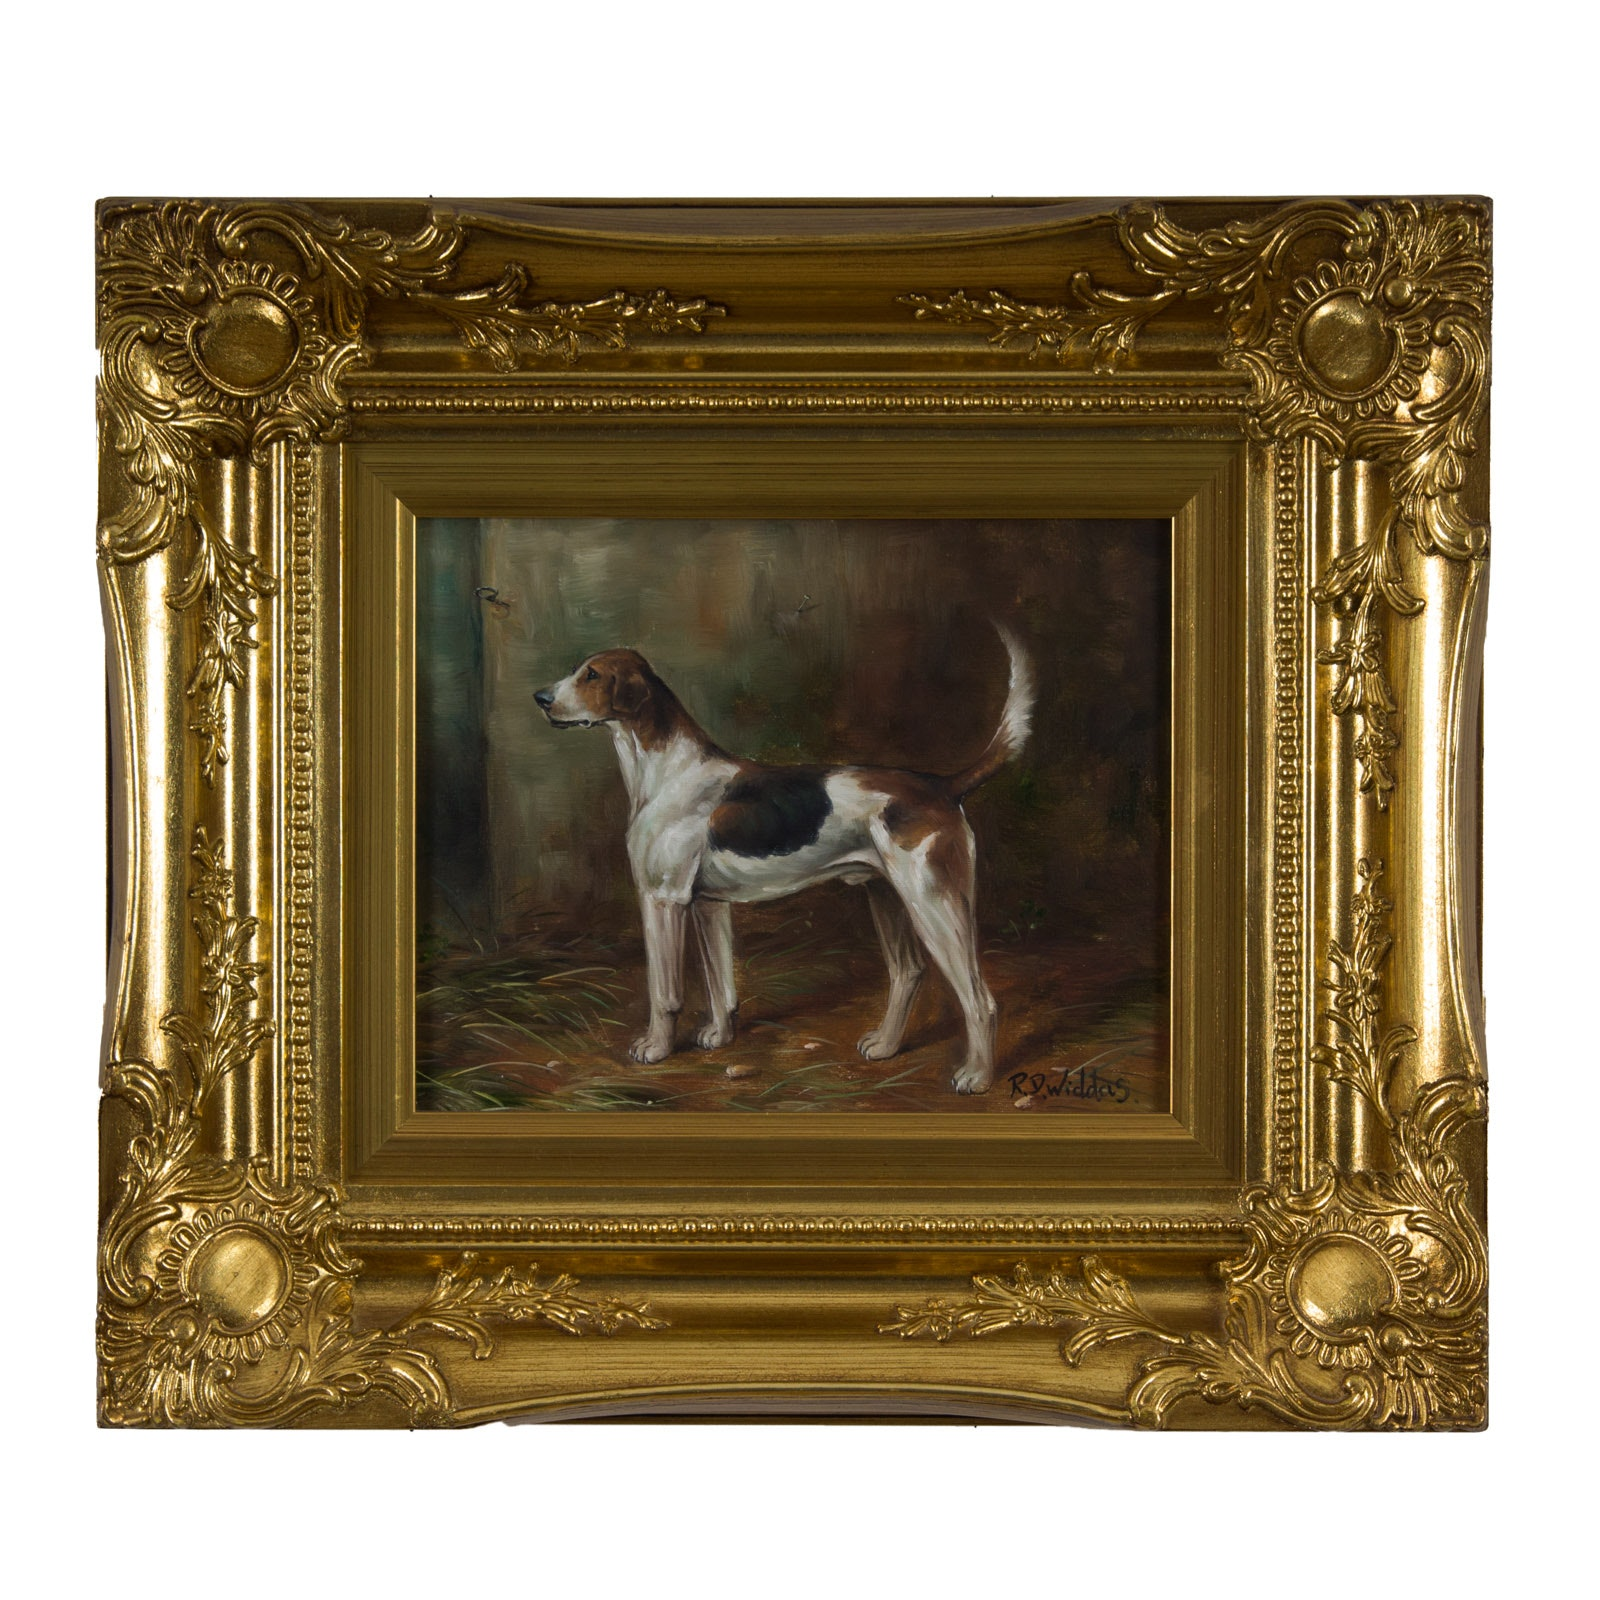 R.D. Widdas Dog Theme Oil on Canvas